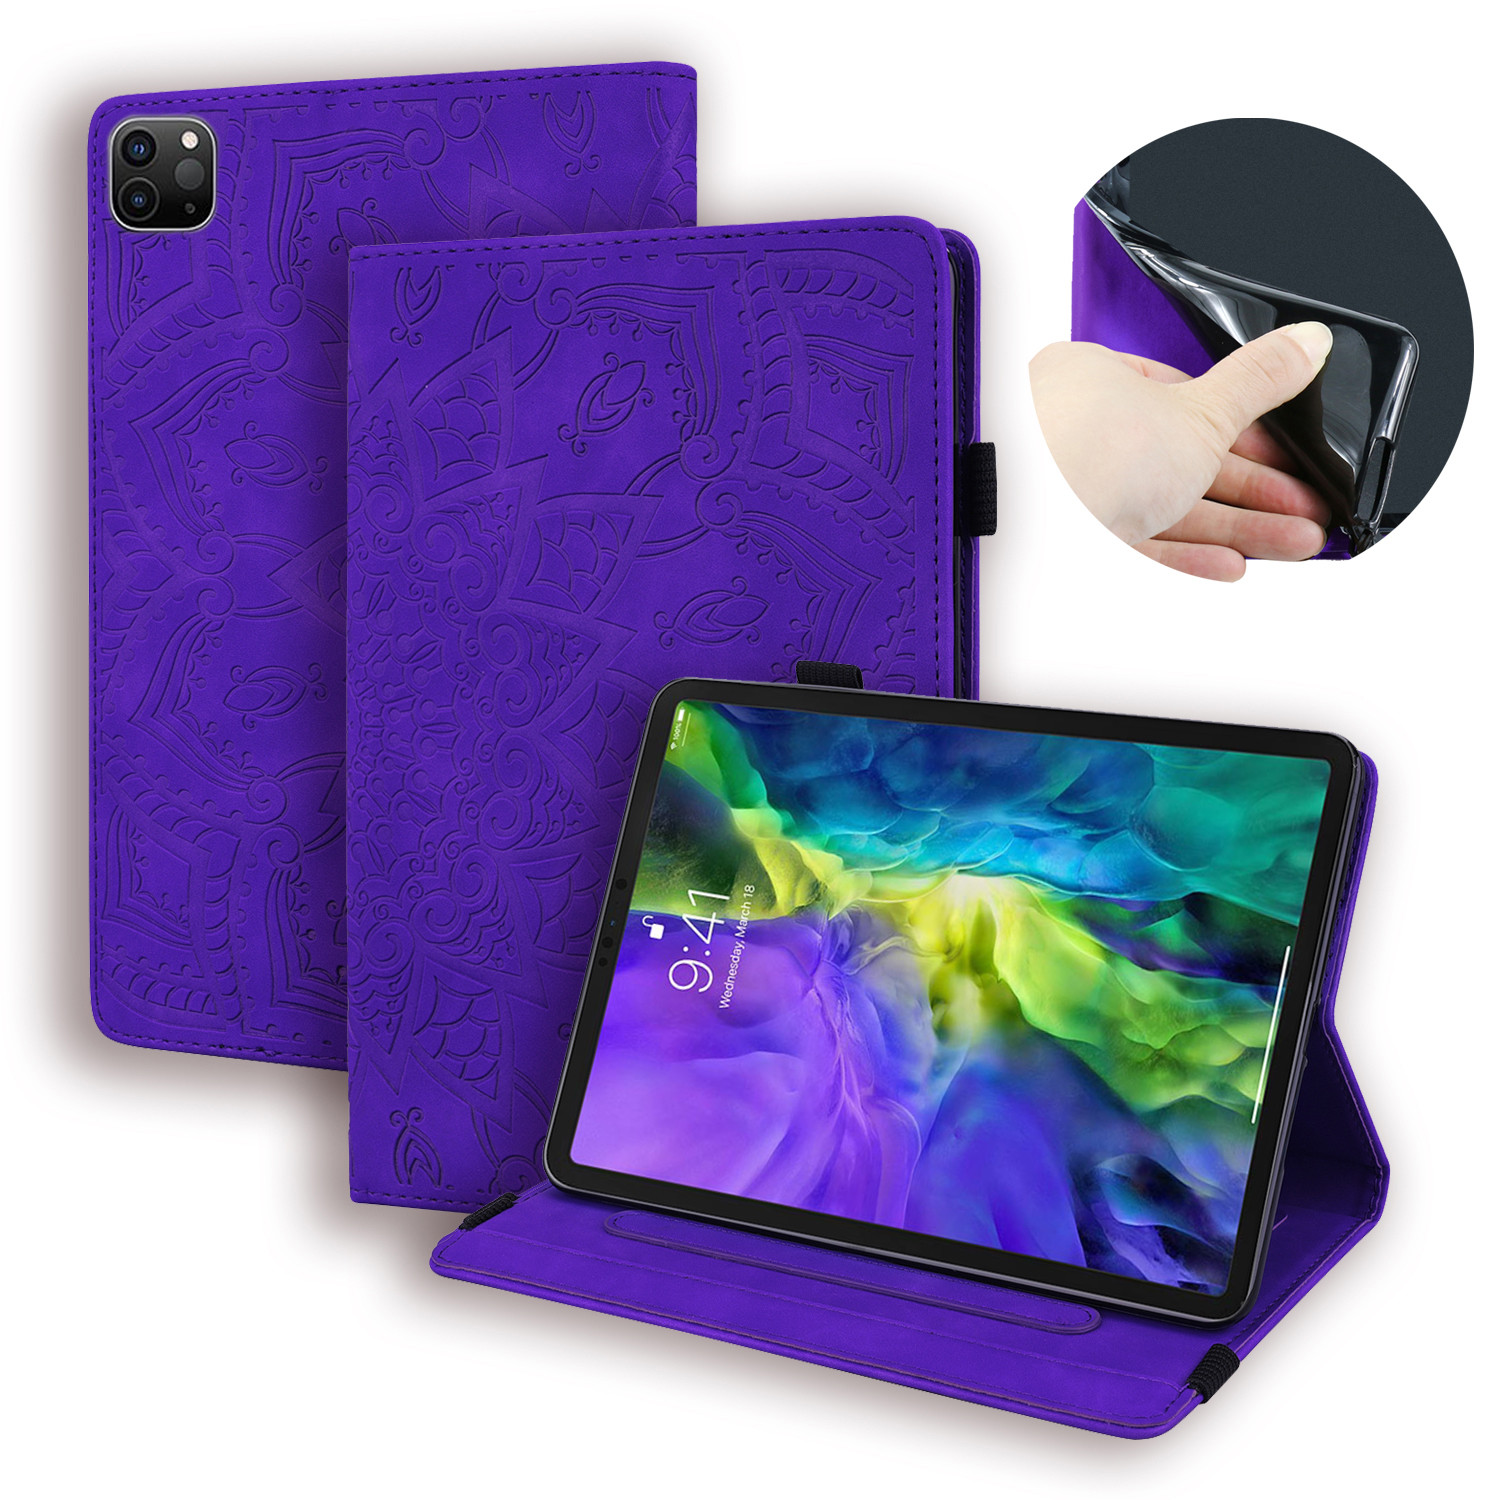 Purple Khaki Flower Embossed Tablet Cover For iPad Pro 2020 Case 12 9 4th Generation Tablet Cover Fold